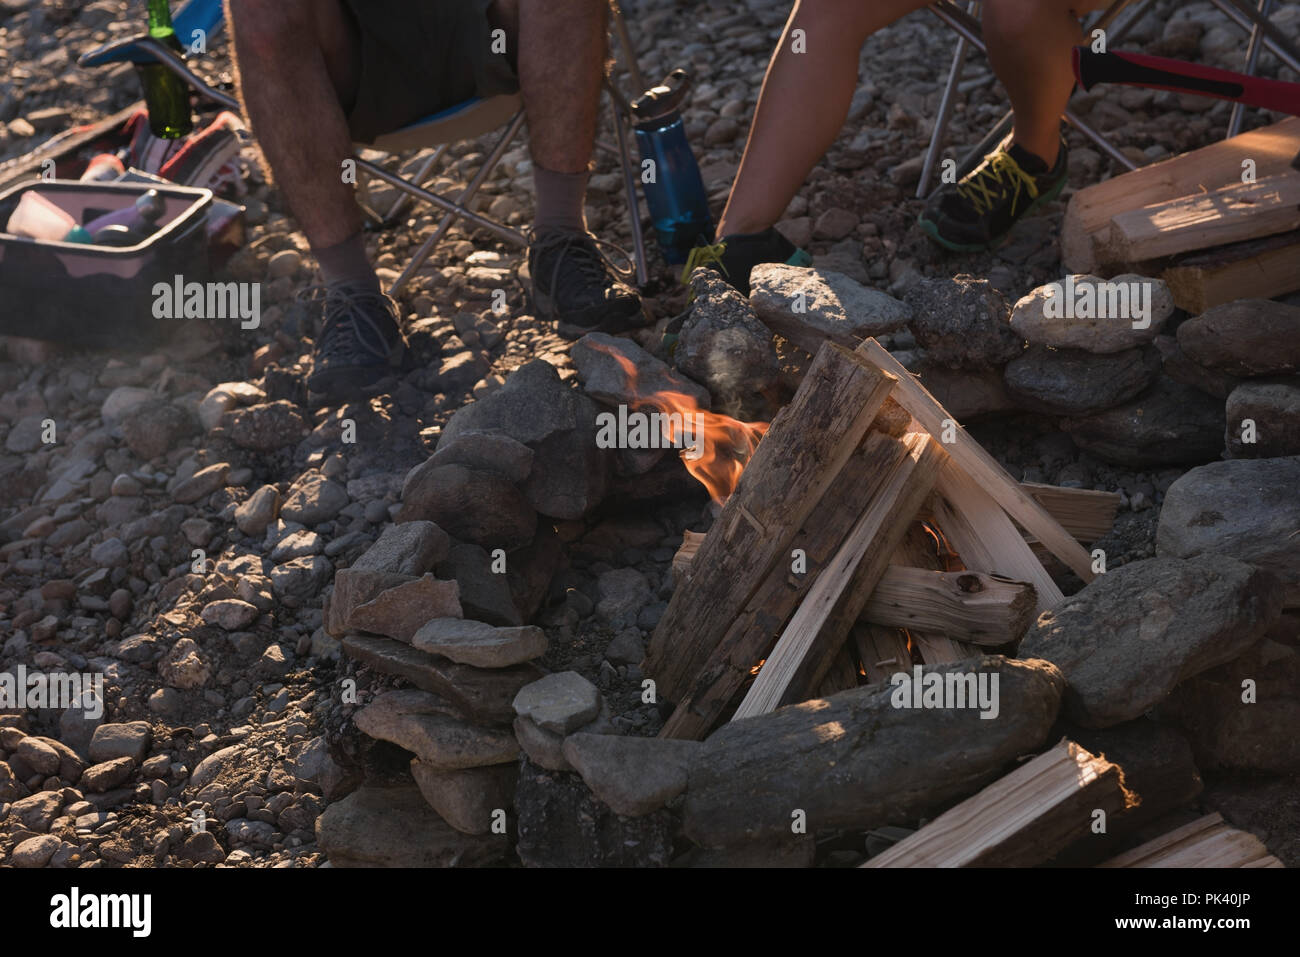 Couple camping near campfire - Stock Image